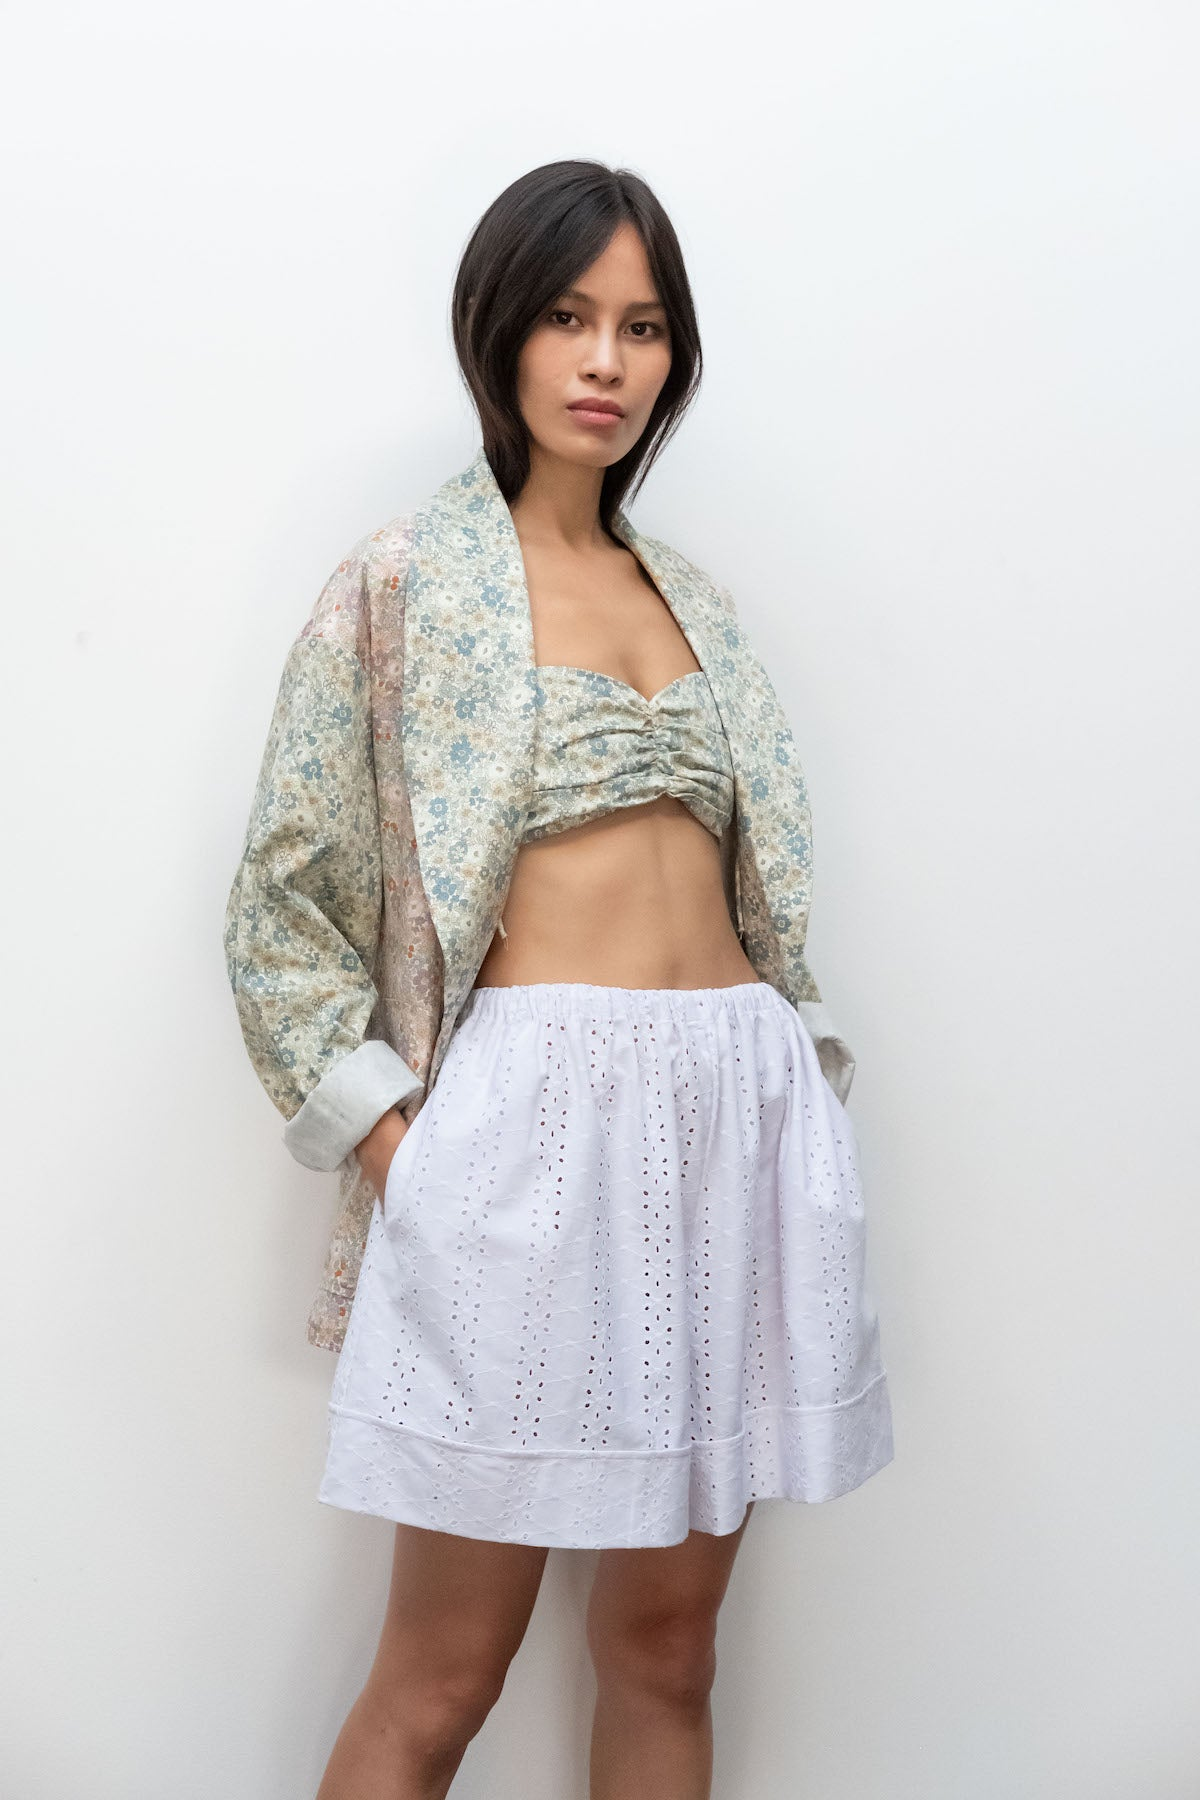 Kurt Lyle x Toit Volant Wynn Shorts in White Embroidered Eyelet